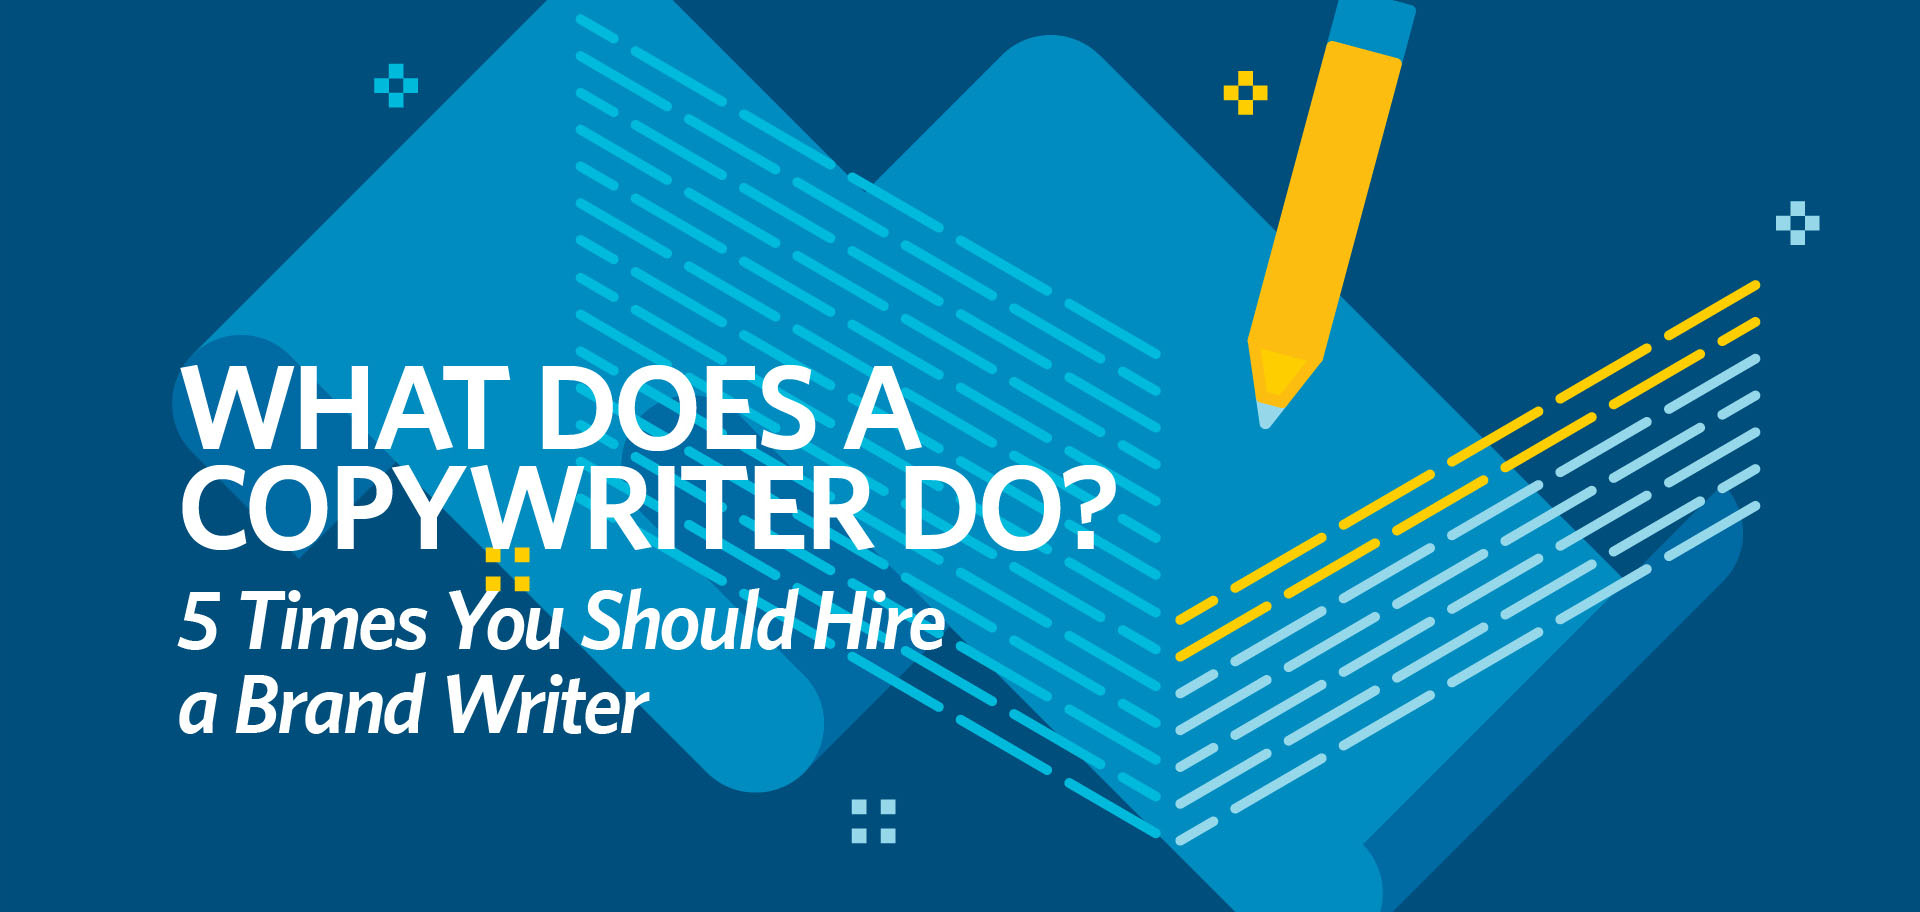 What does a copywriter do? 5 times you should hire a brand writer, Kettle Fire Creative blog, copywriting, brand writer, content writer copywriter What Does a Copywriter Do? 5 Times You Should Hire a Brand Writer brand writing fi